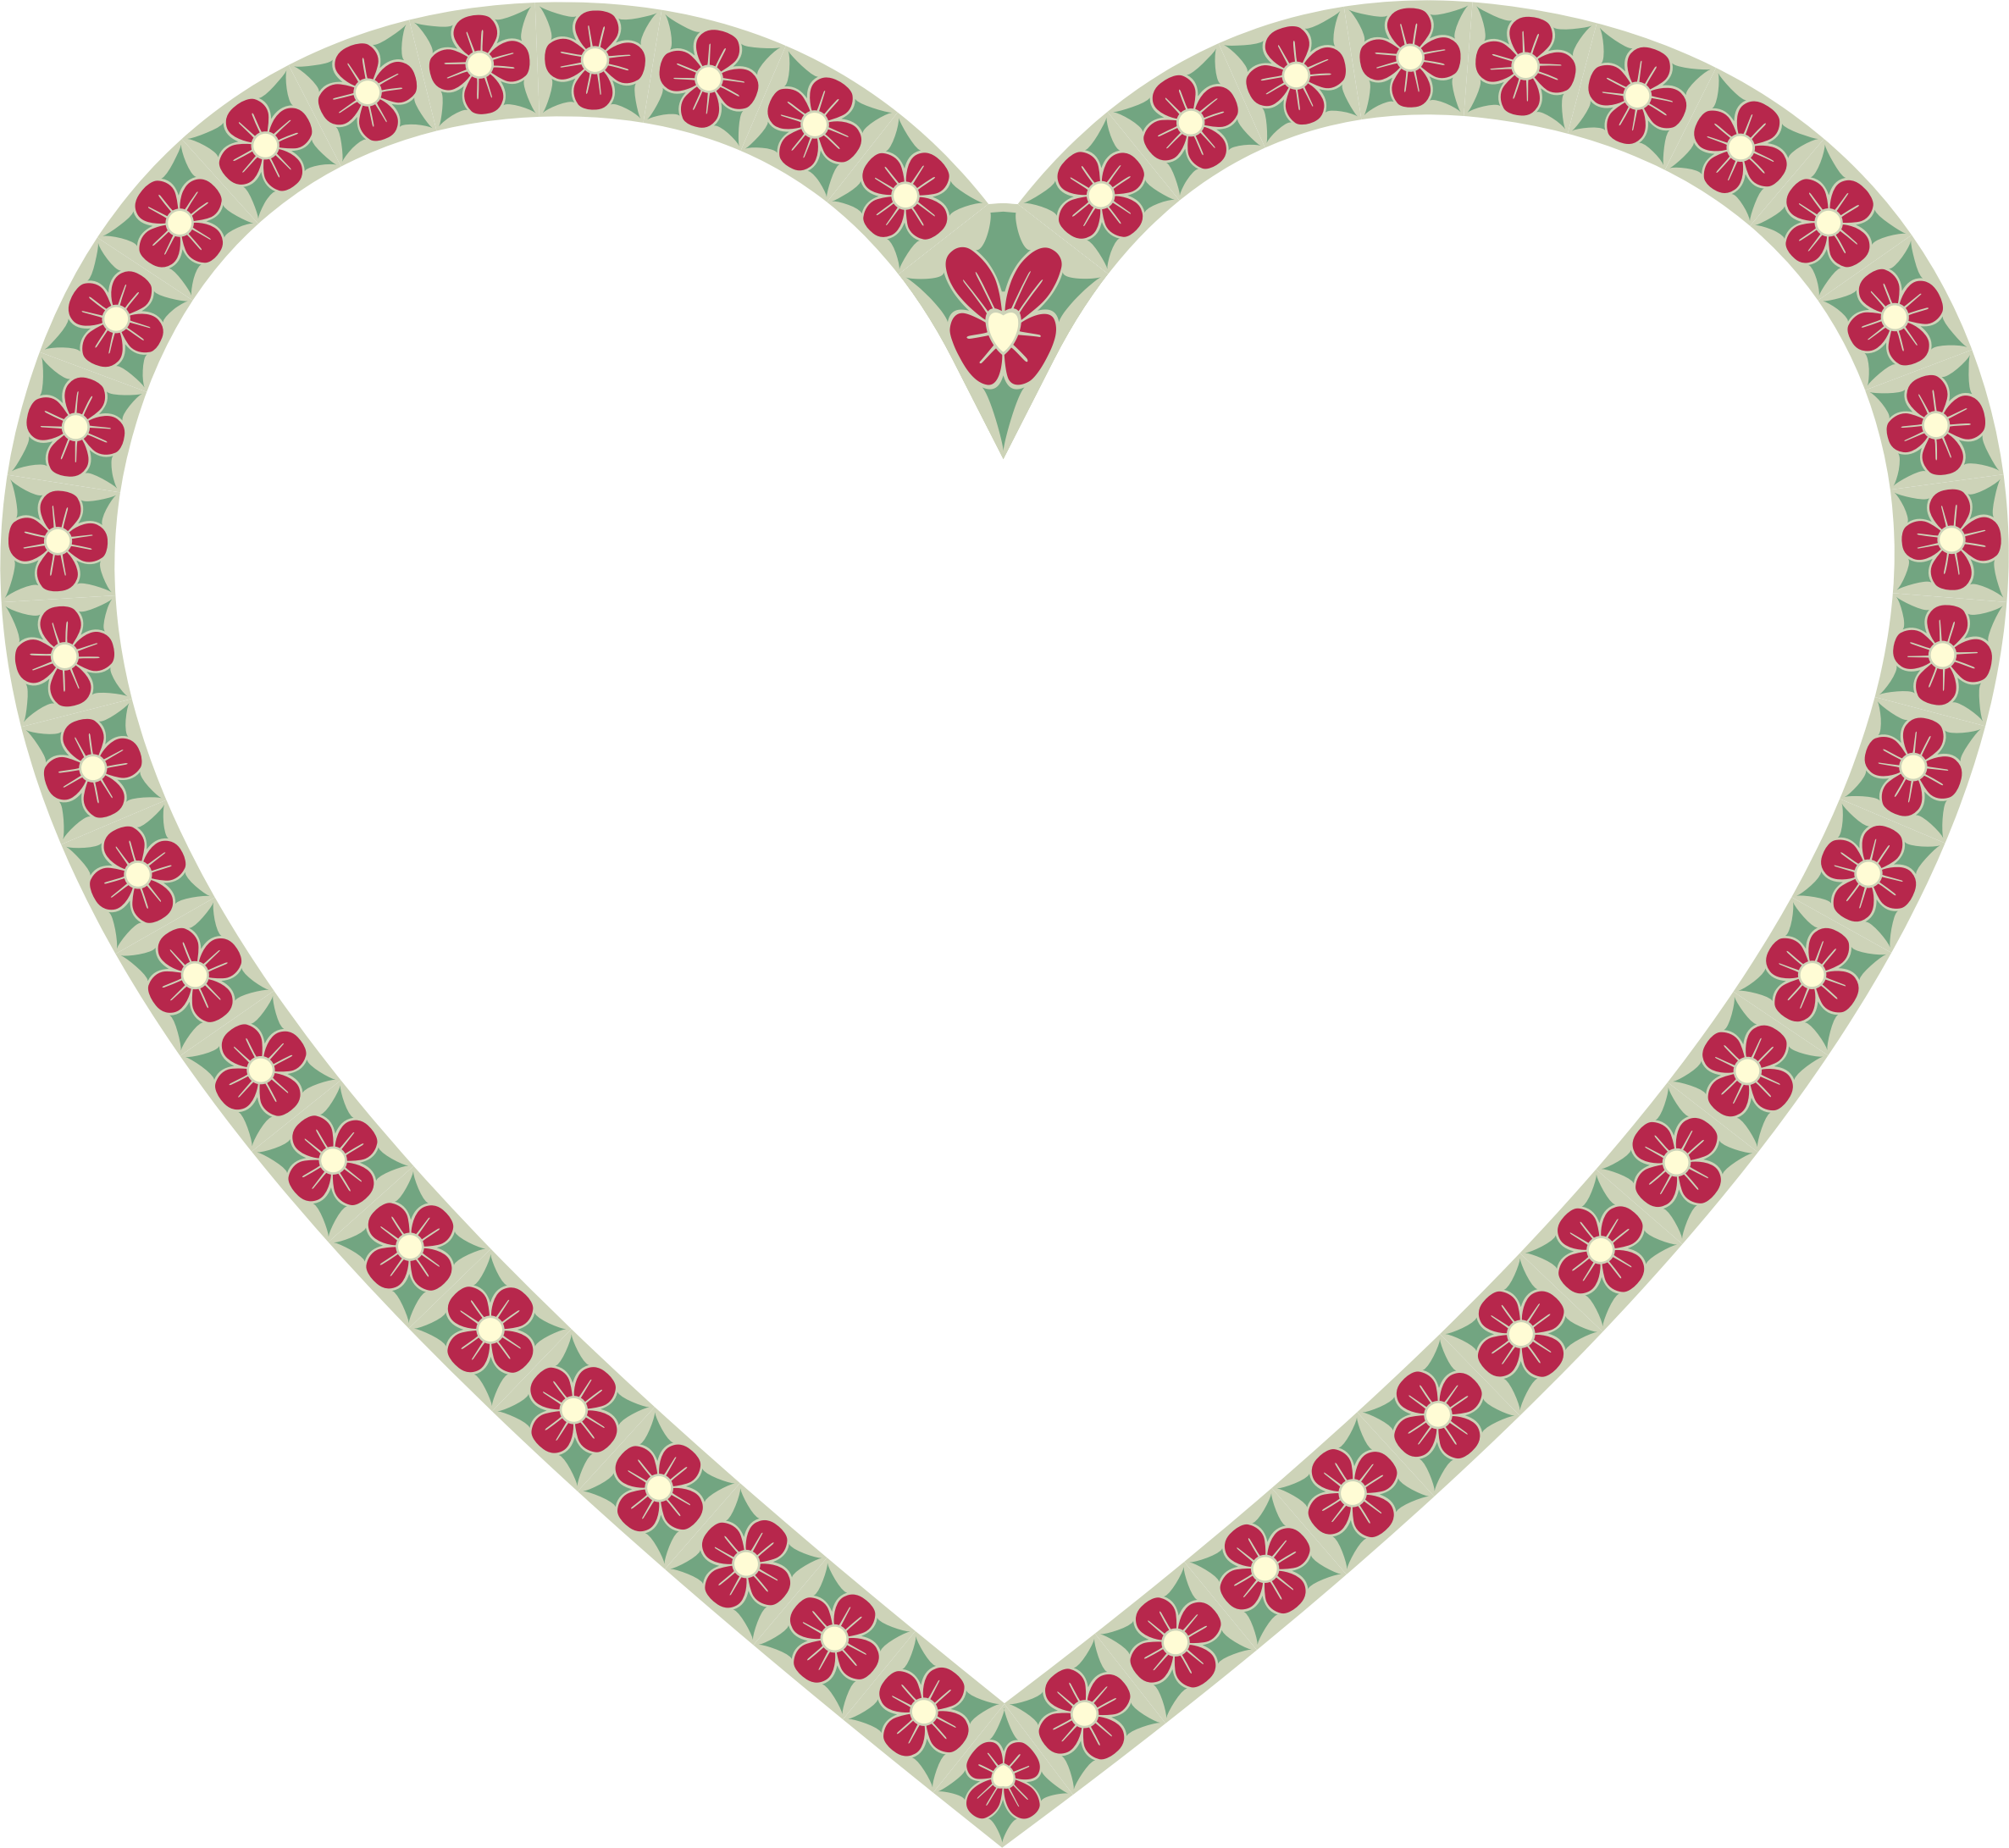 Floral Border Heart by GDJ